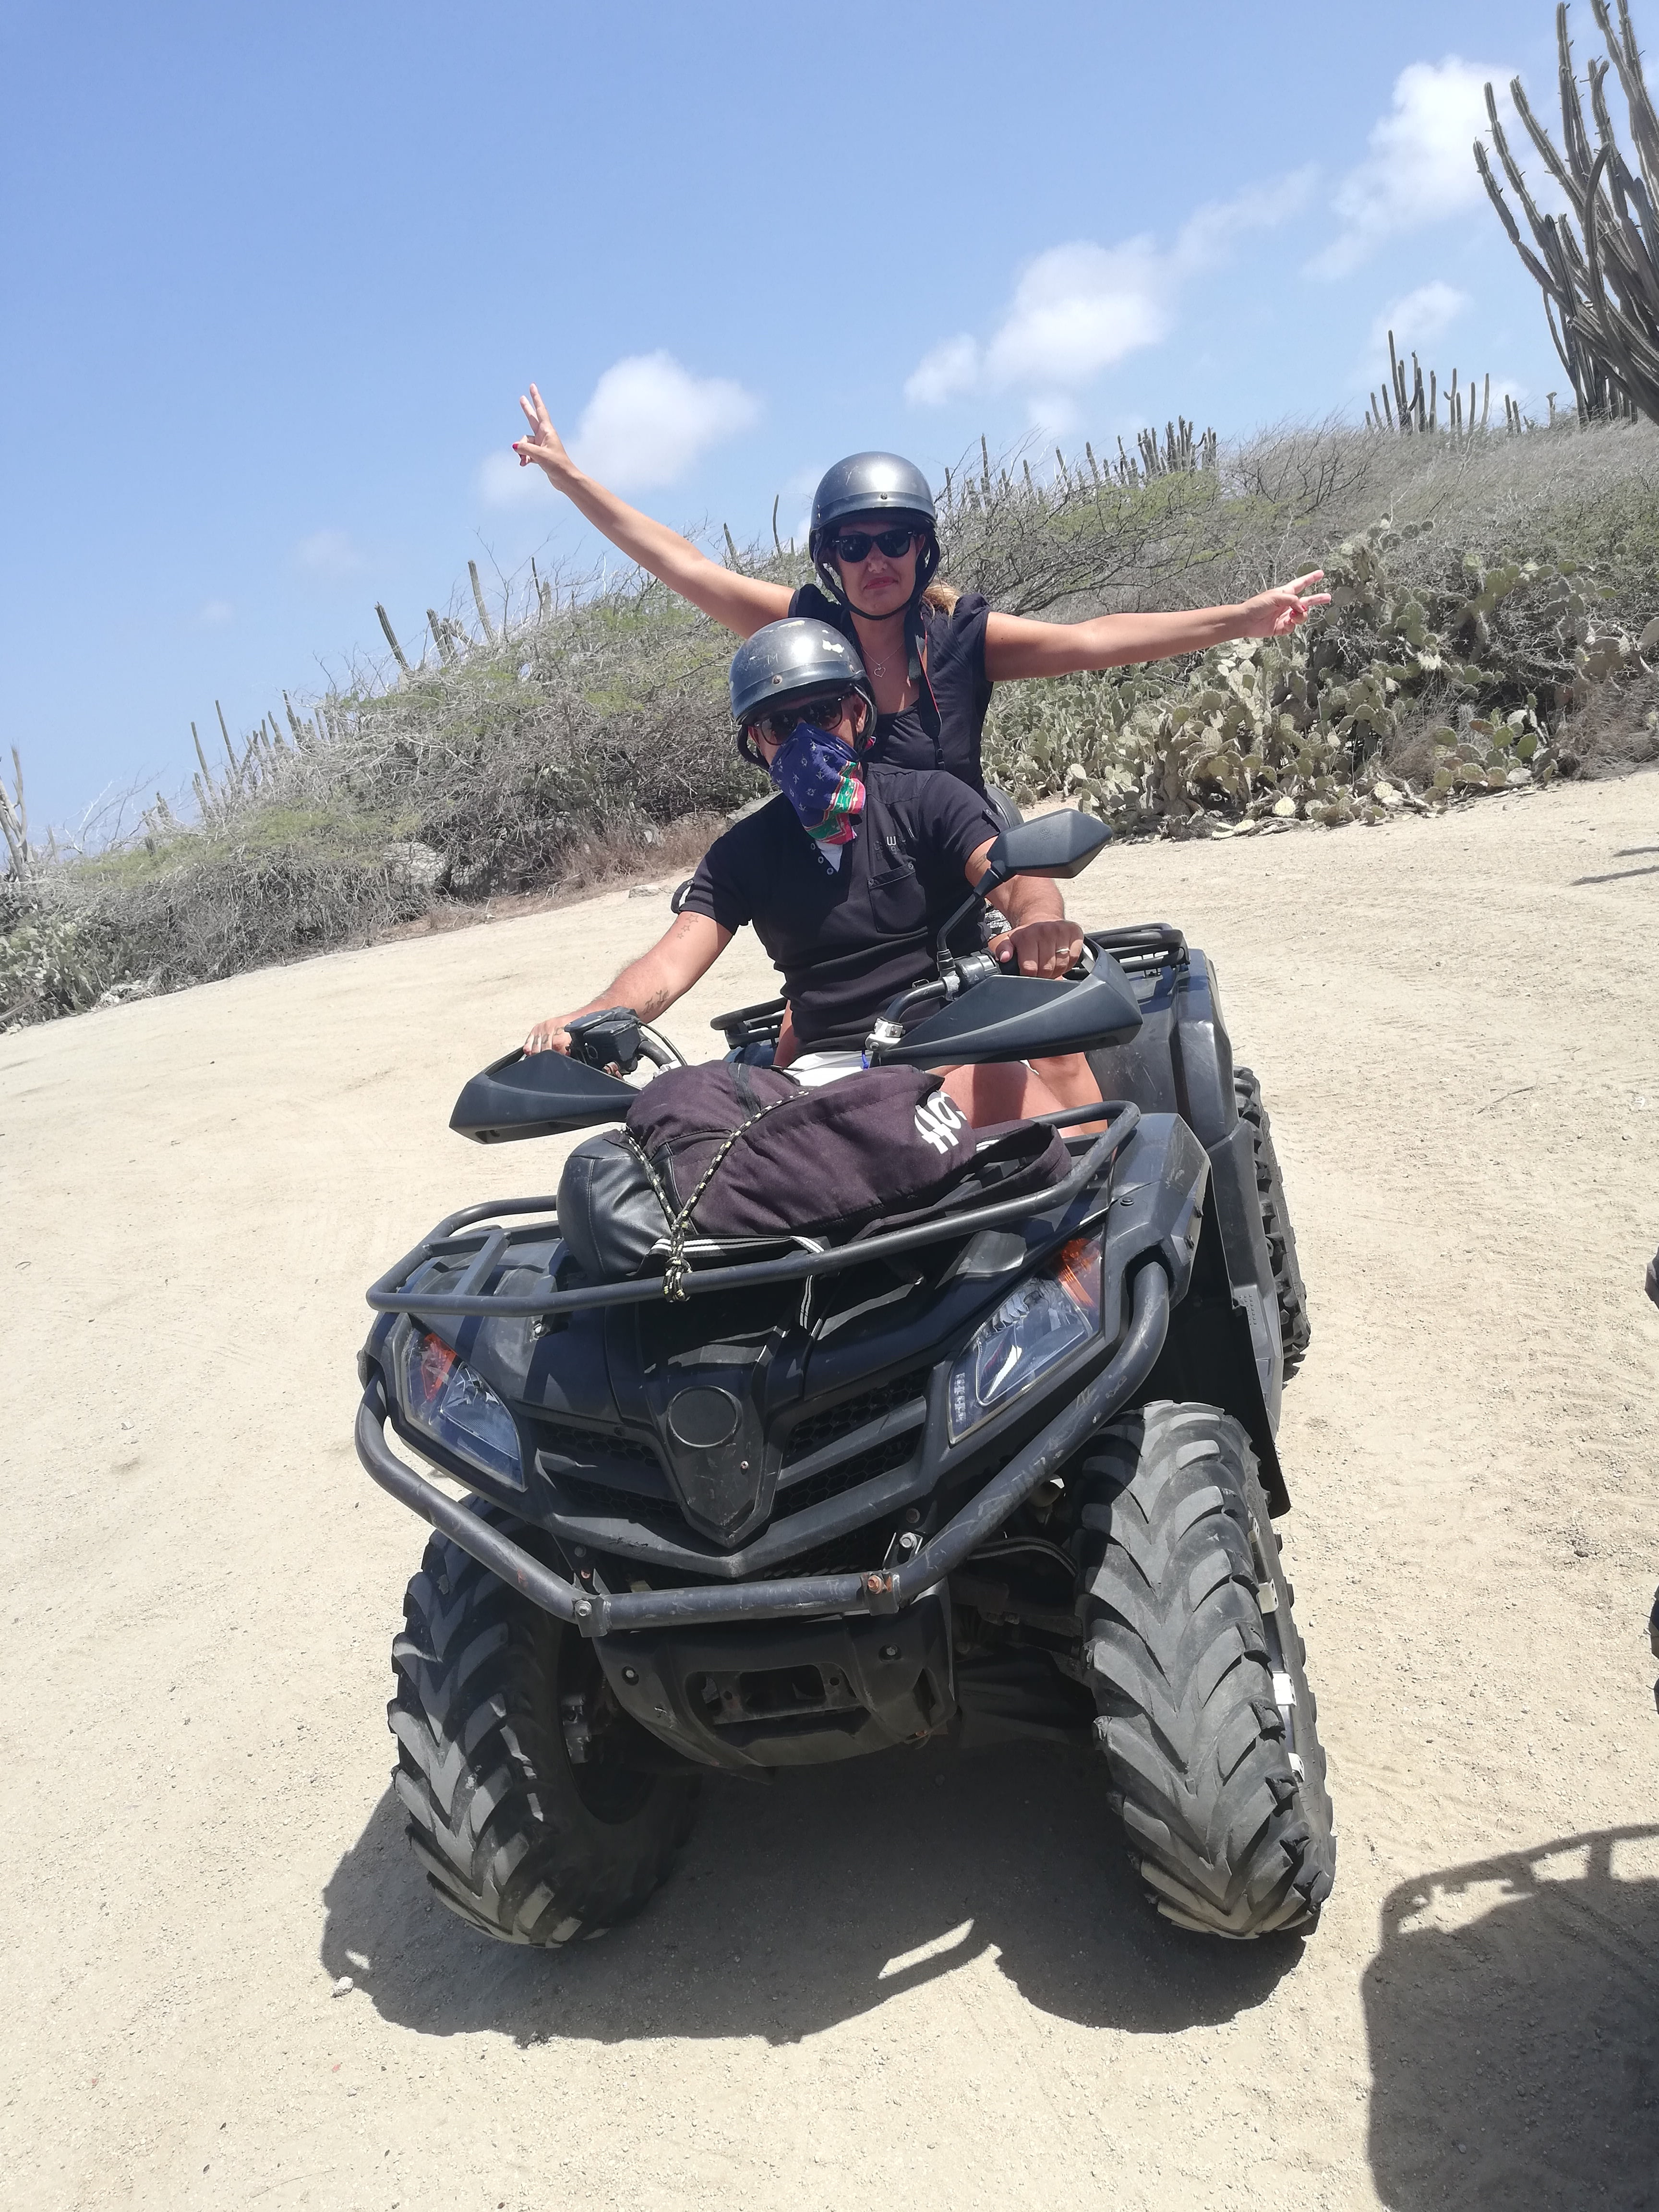 ACTION TOURS ARUBA, TOUR IN QUAD (ATV)